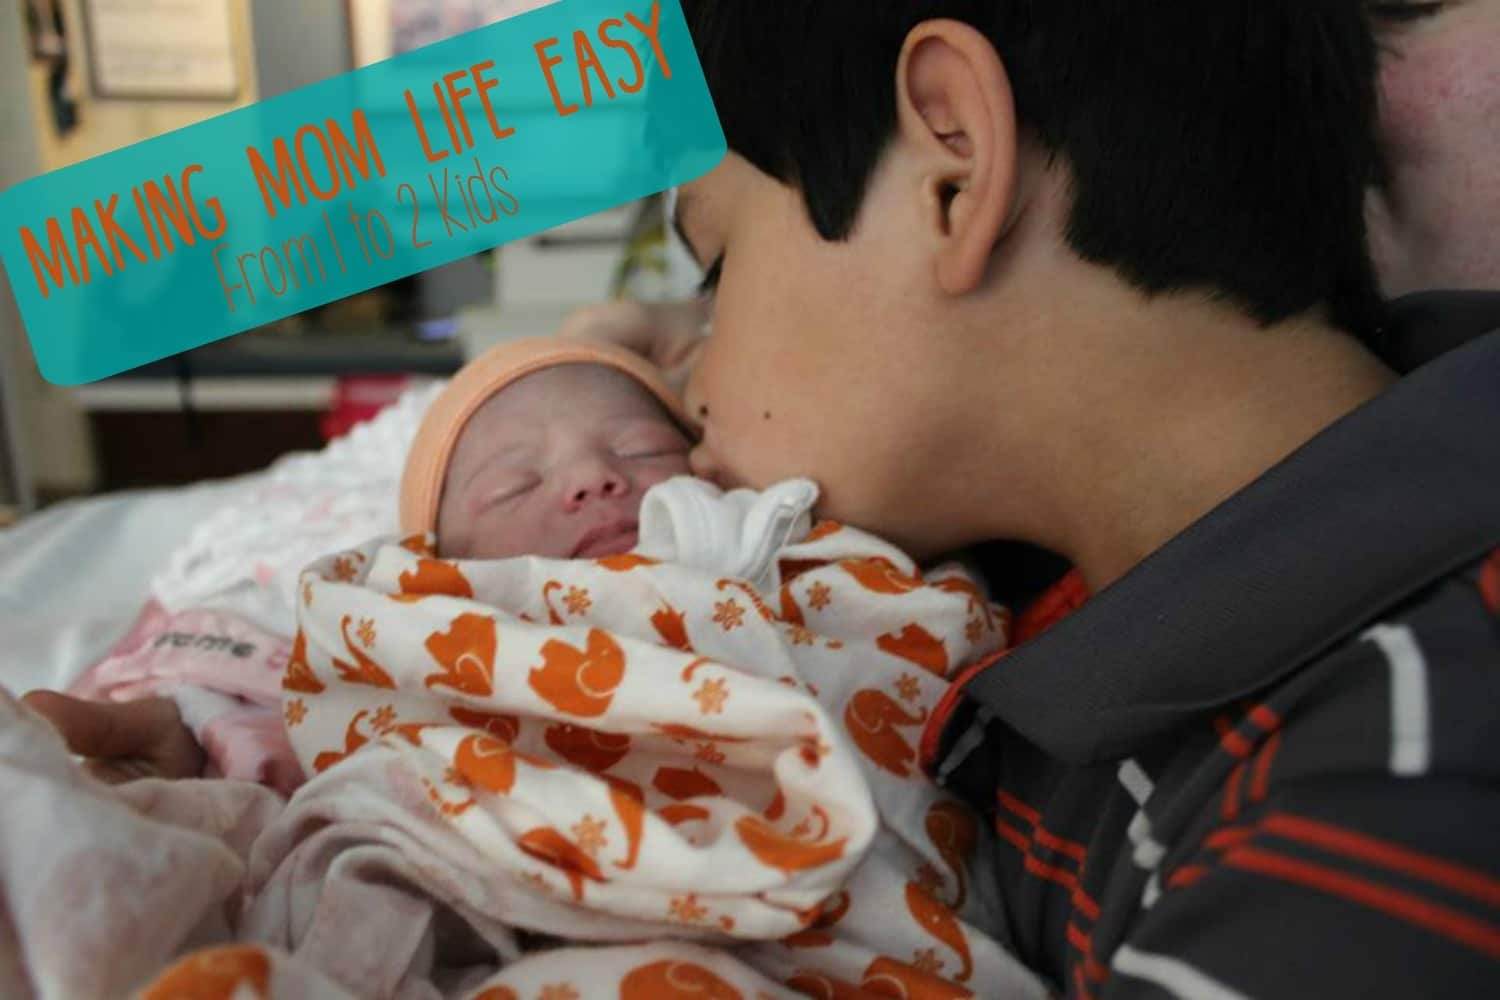 5 Tips: Making Mom Life Easier From 1 to 2 Kids